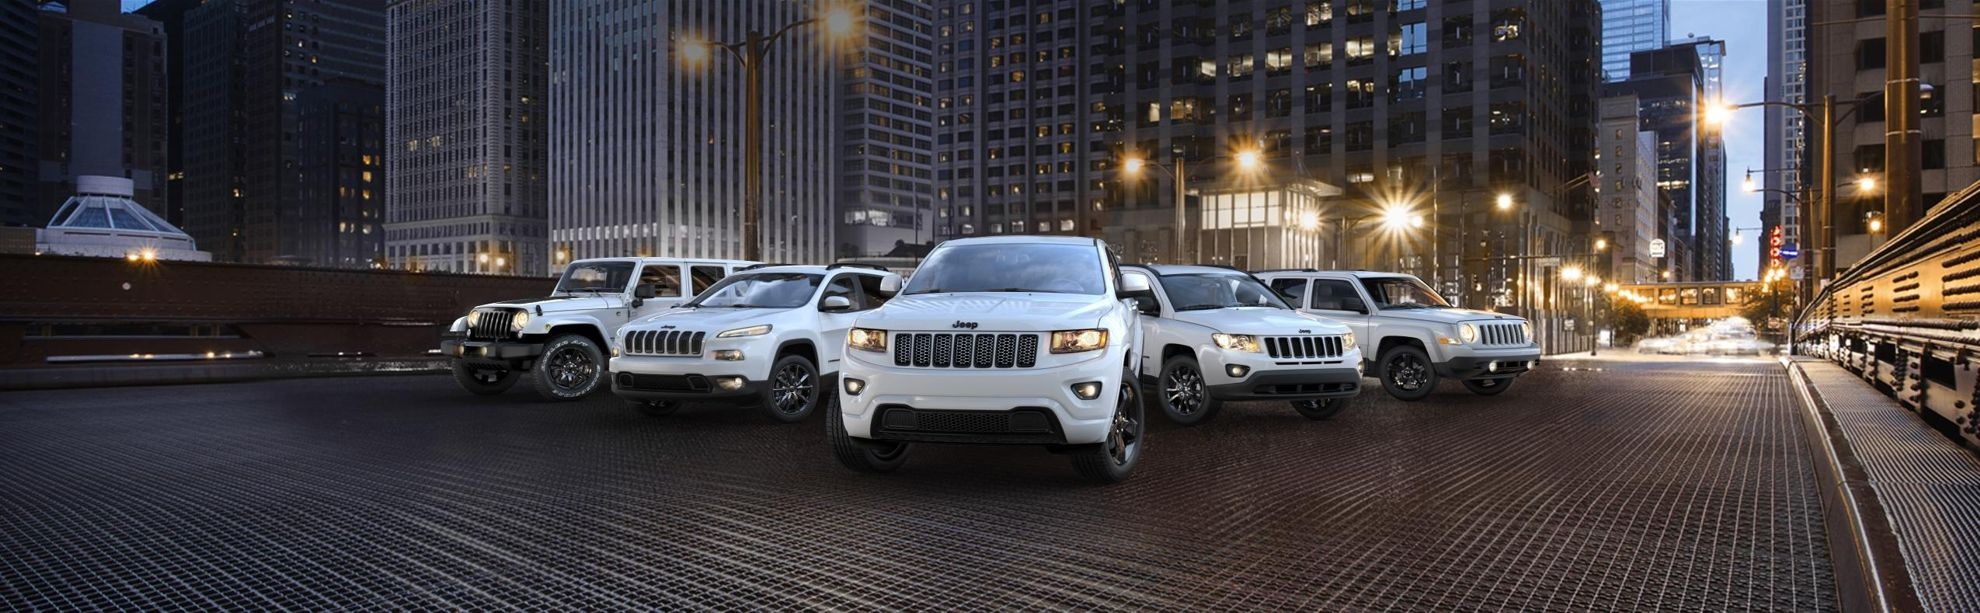 JEEP_Altitude_Models_2014